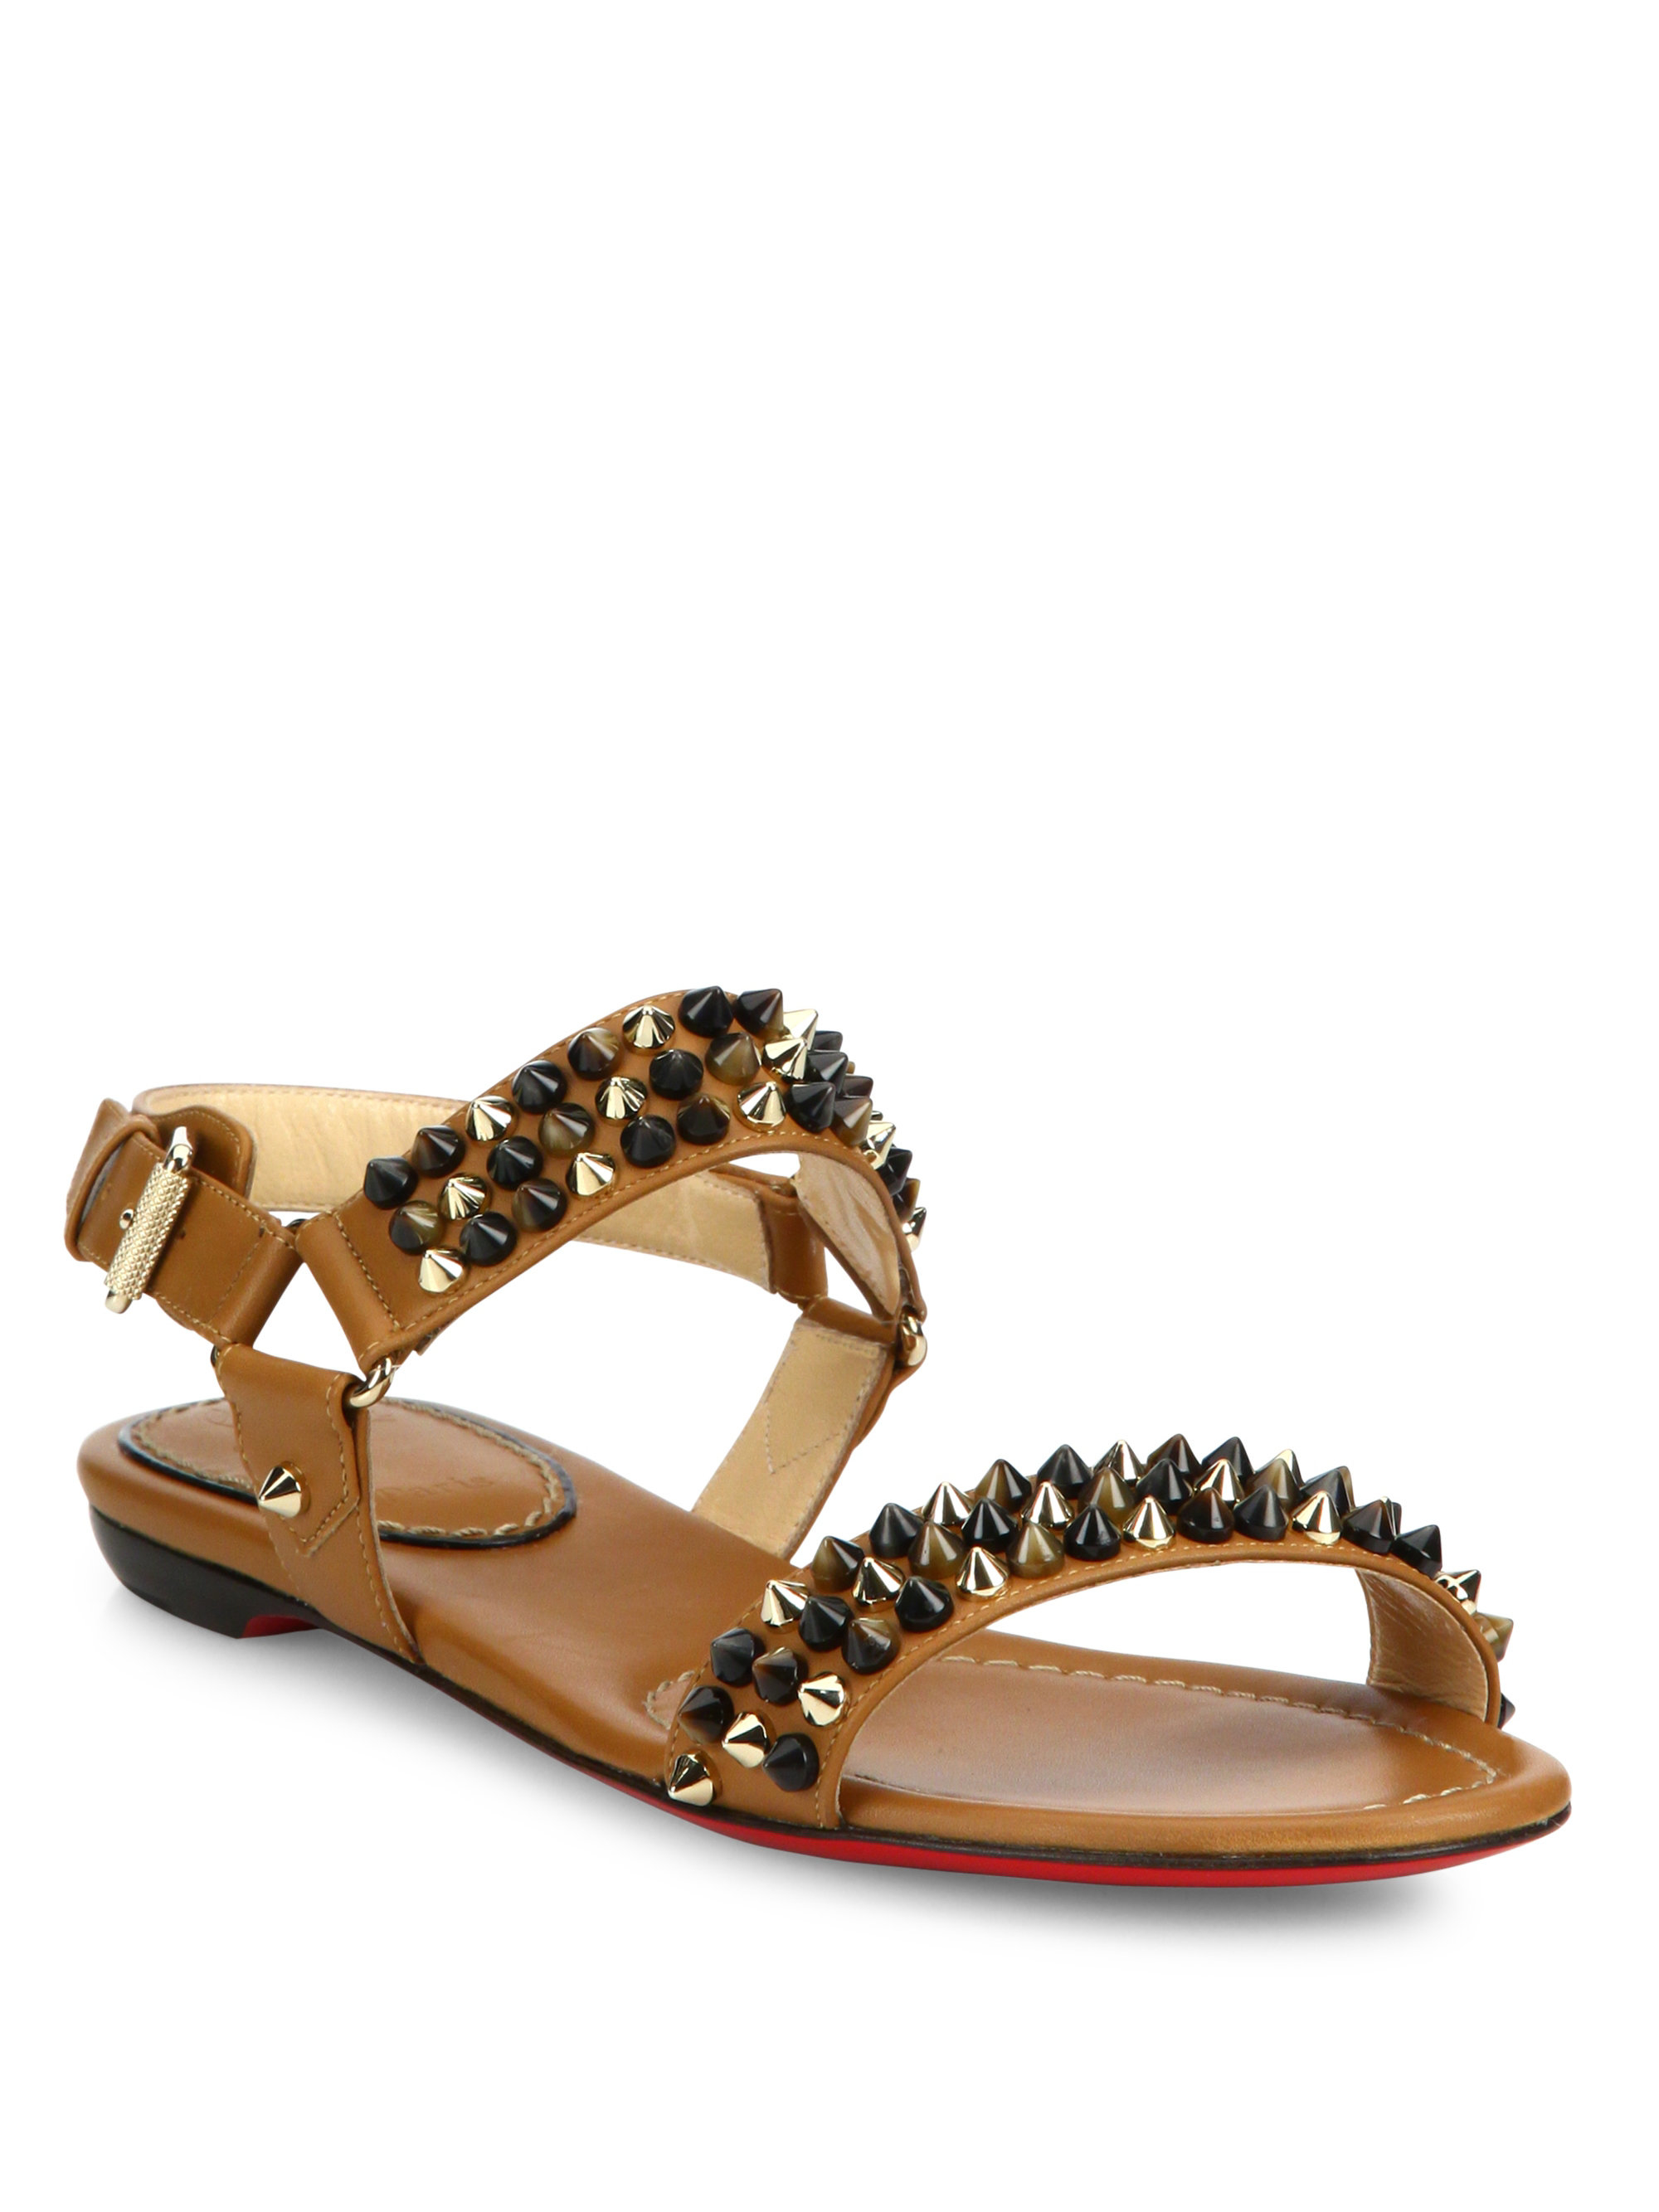 05dce4b05f4 Lyst - Christian Louboutin Bikee Bike Spiked Leather Flat Sandals in ...